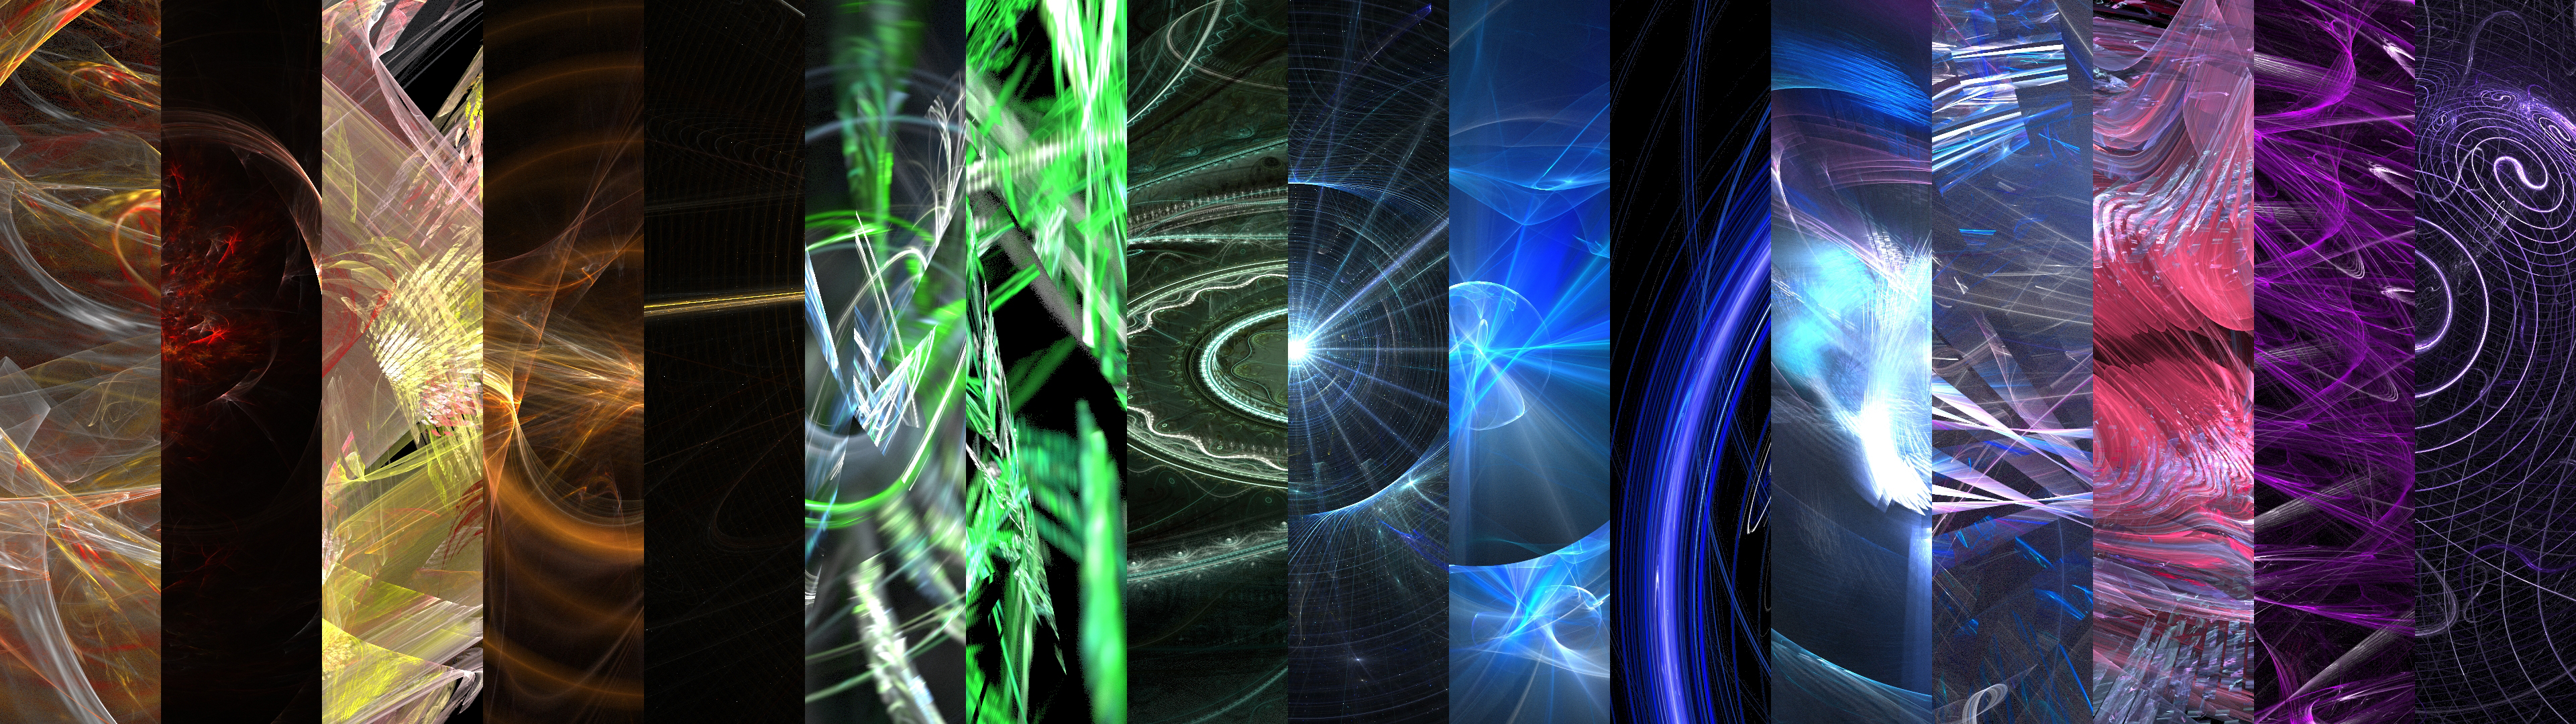 bigbcdeviantartcomDual monitor wallpaper pack by 3840x1080